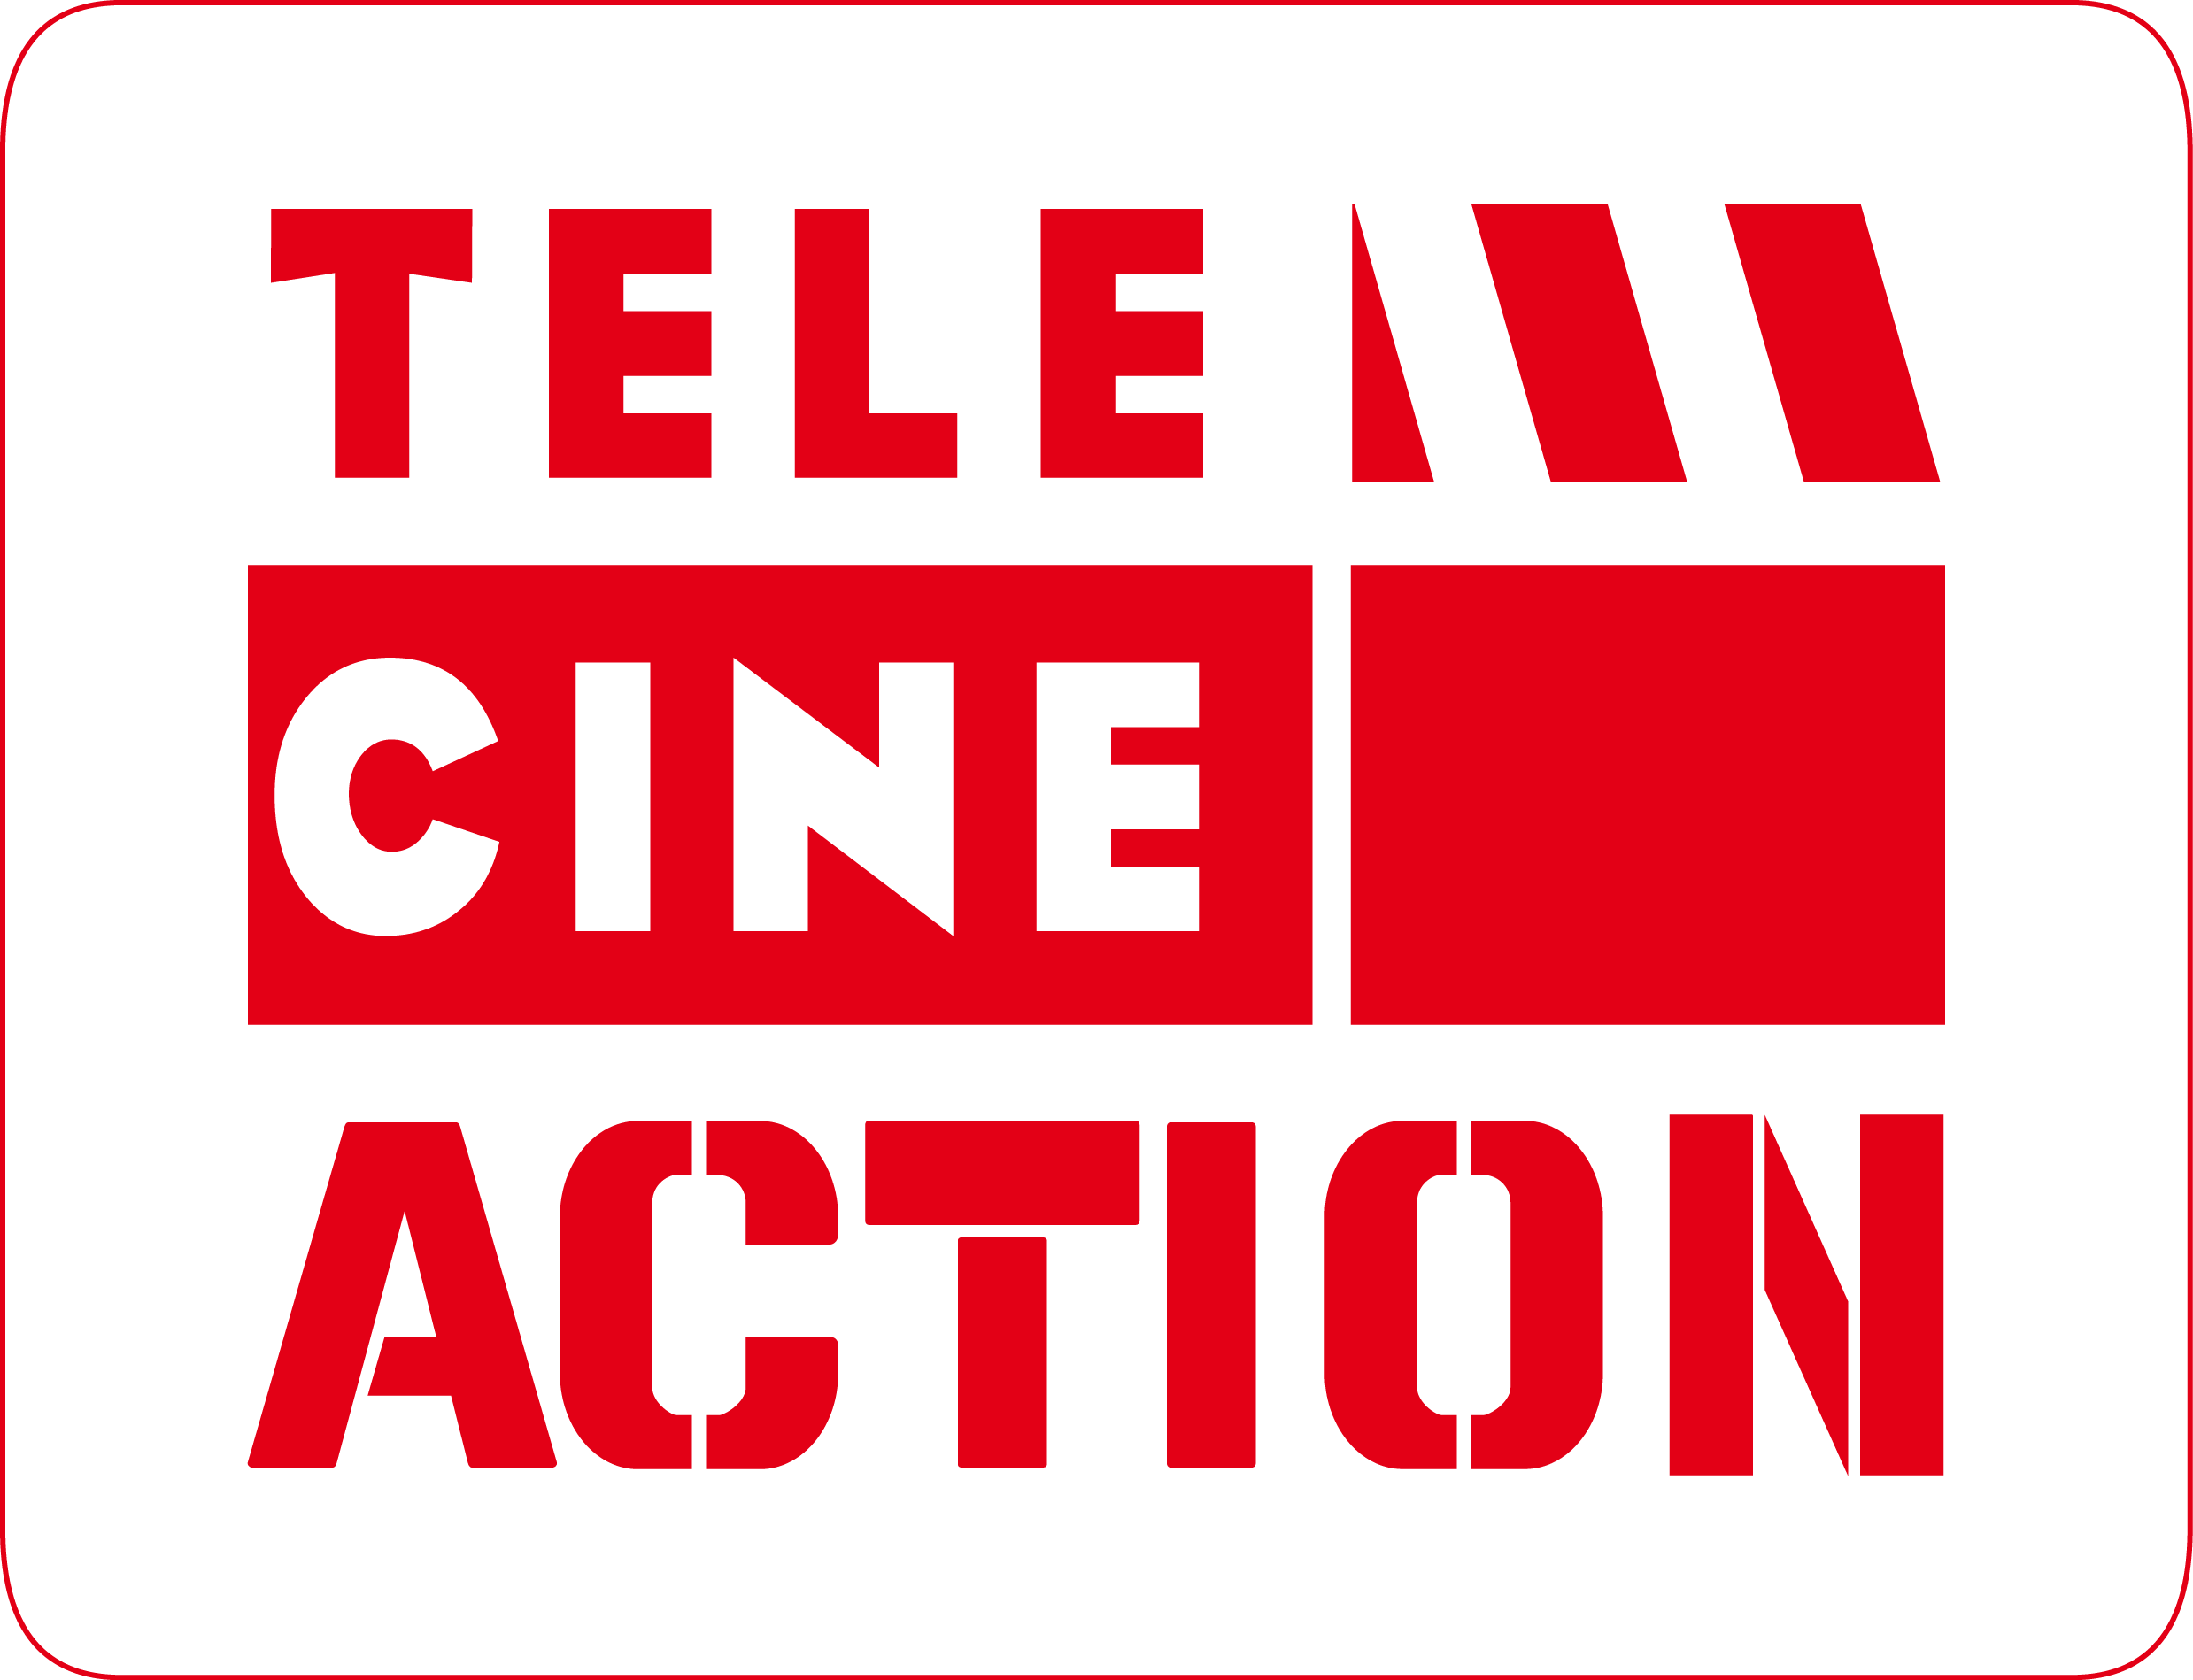 Telecine Action Action